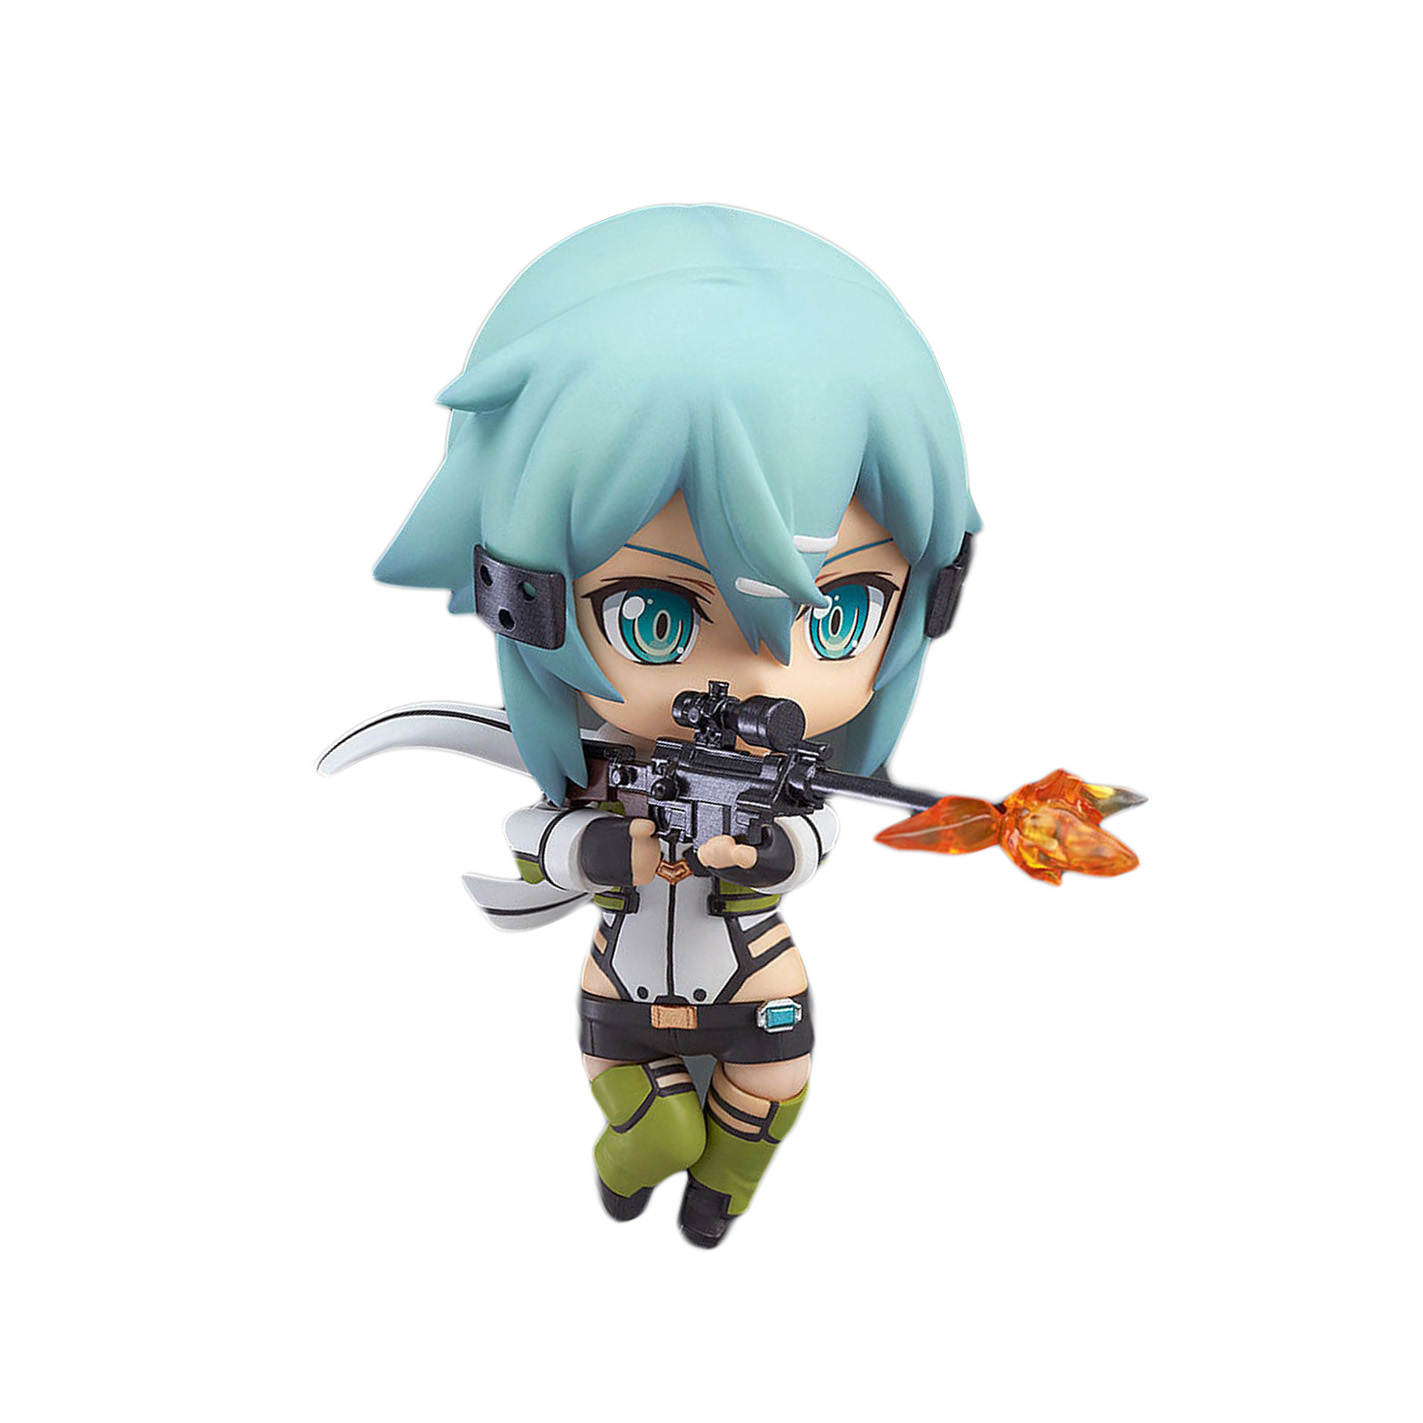 Chanycore GSC Nendoroid 452# Sword Art 2 Online SAO Gun Gale Online Asada Shino Sinon Kazuto Ghost Bullet Ver PVC Model 10cm 4'' 12 12 30 75 of 4 flutes hrc 60 mill cutter solid carbide end mill cnc machine milling tools